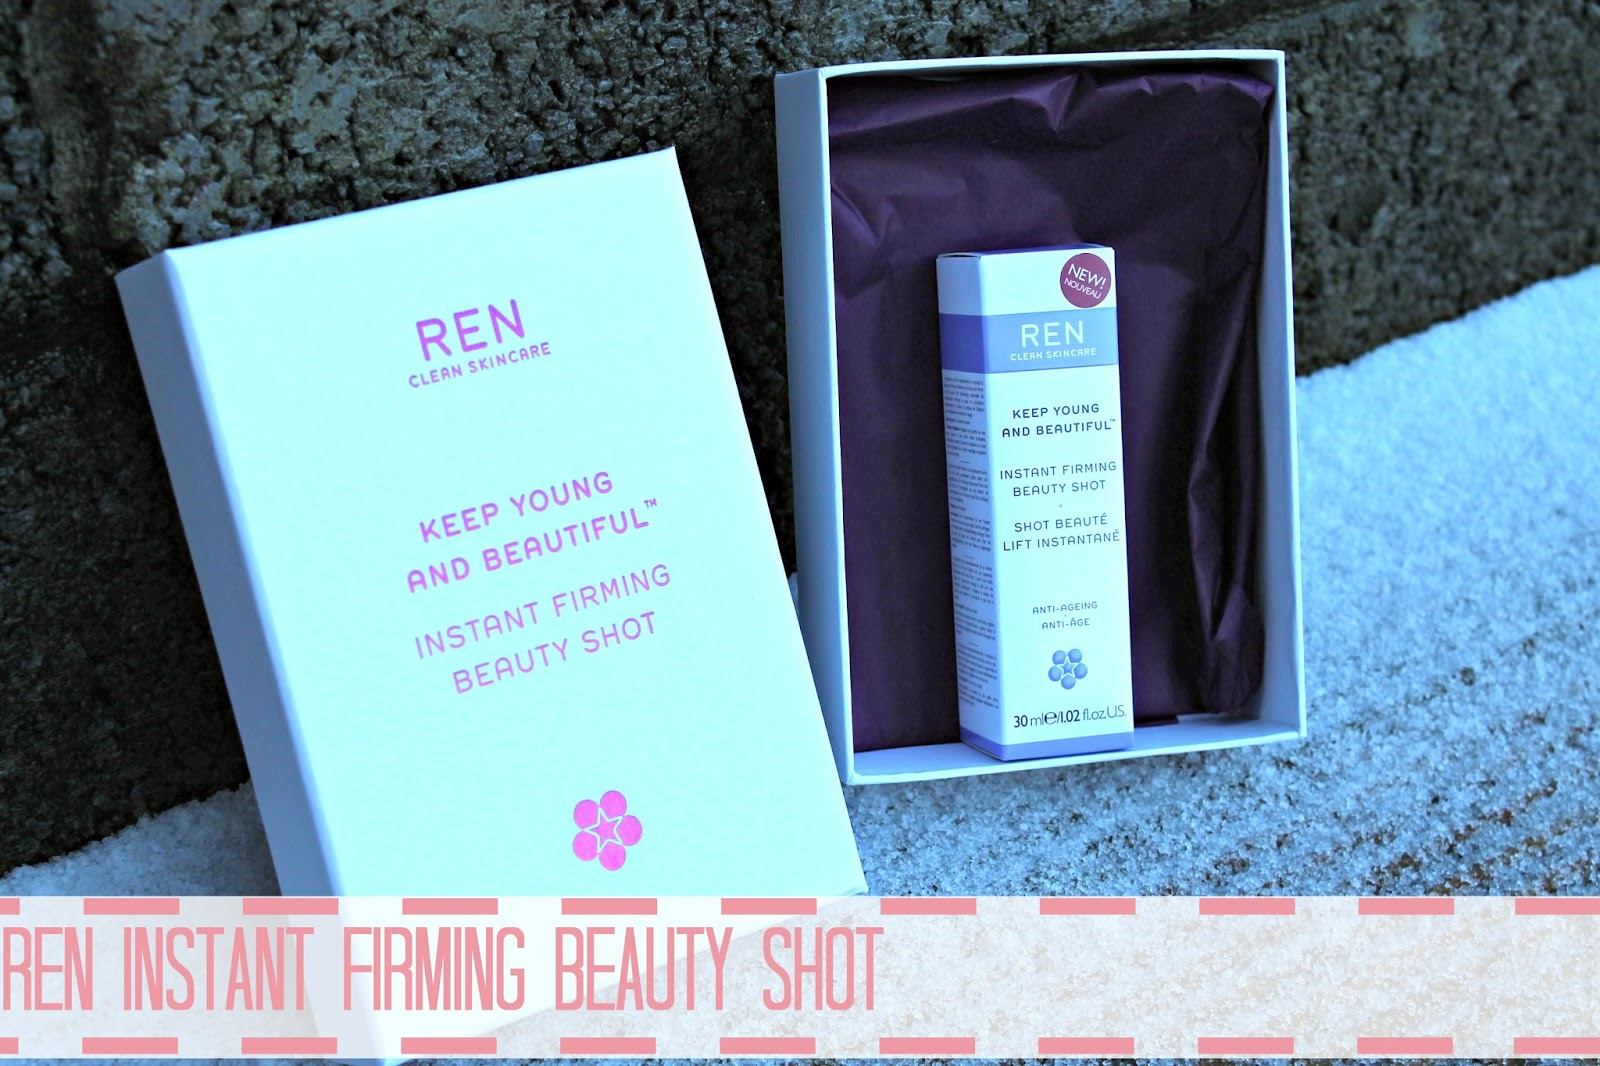 ren skincare instant firming beauty shot review